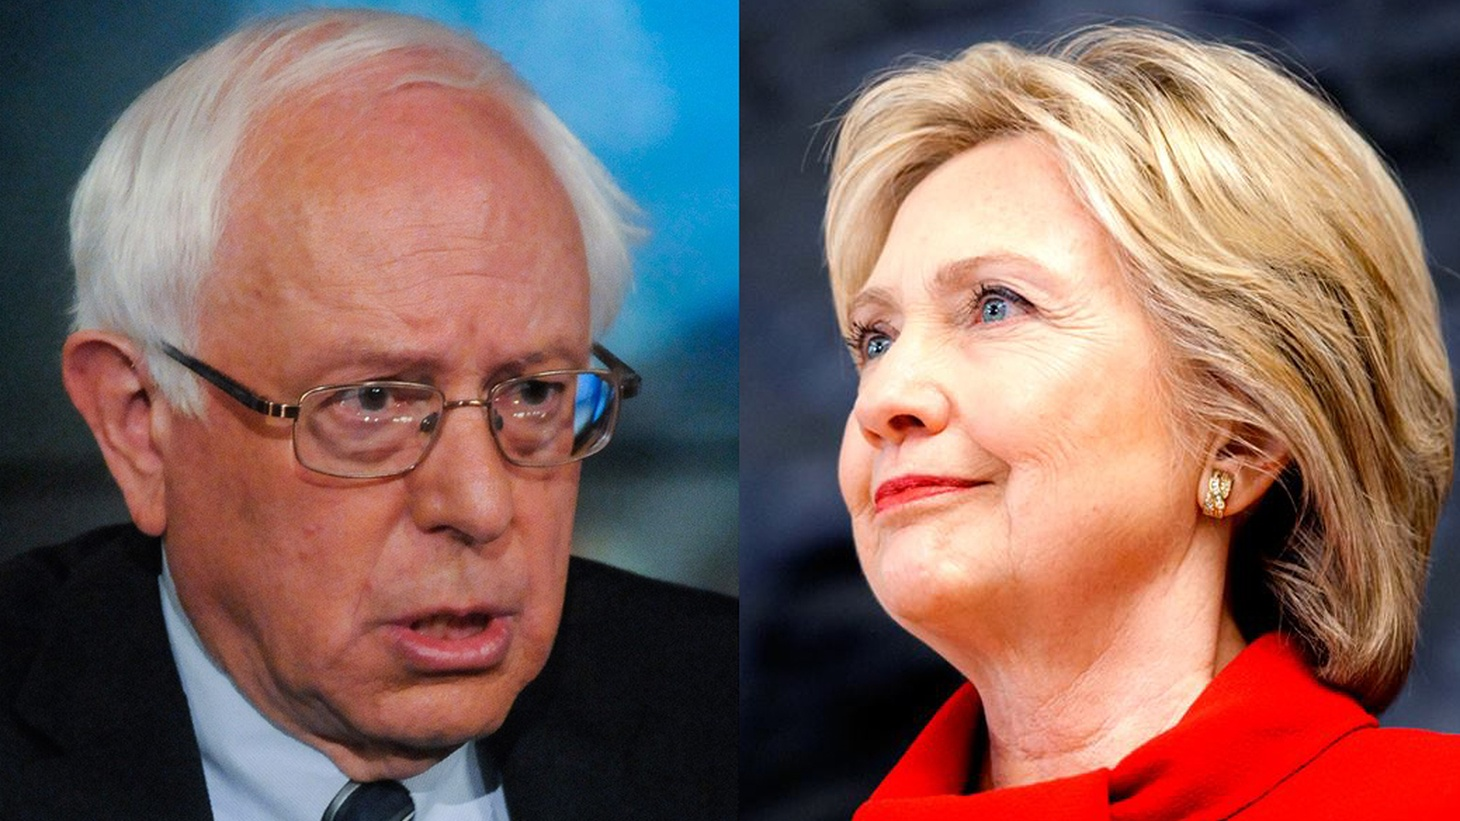 KCRW presents the Democratic debate hosted by PBS NewsHour from 6-8pm PST on Thursday, February 11.